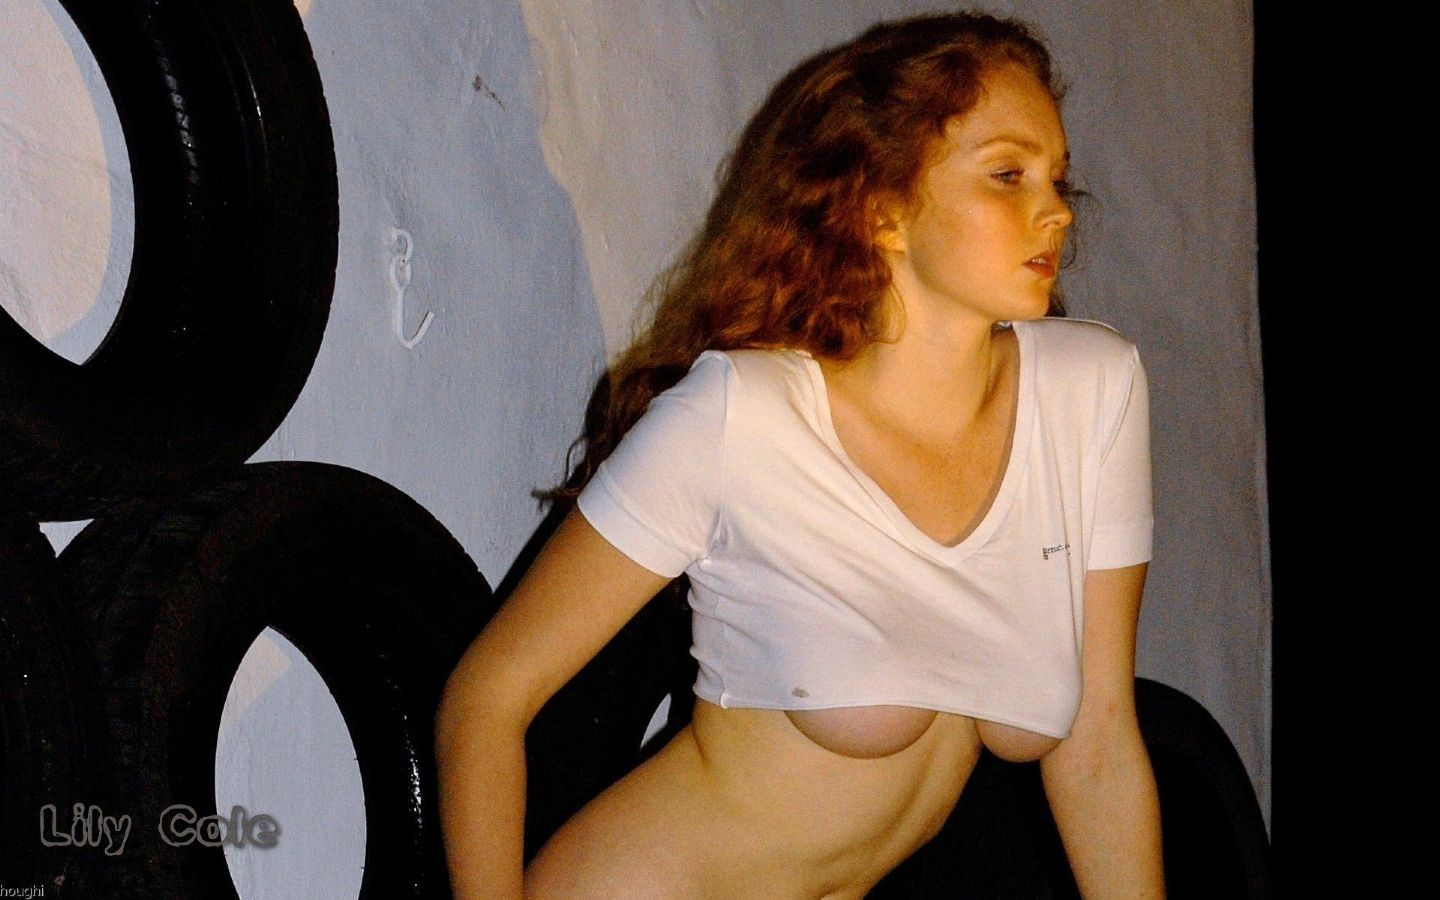 lily cole playboy Pictures, Images & Photos Photobucket